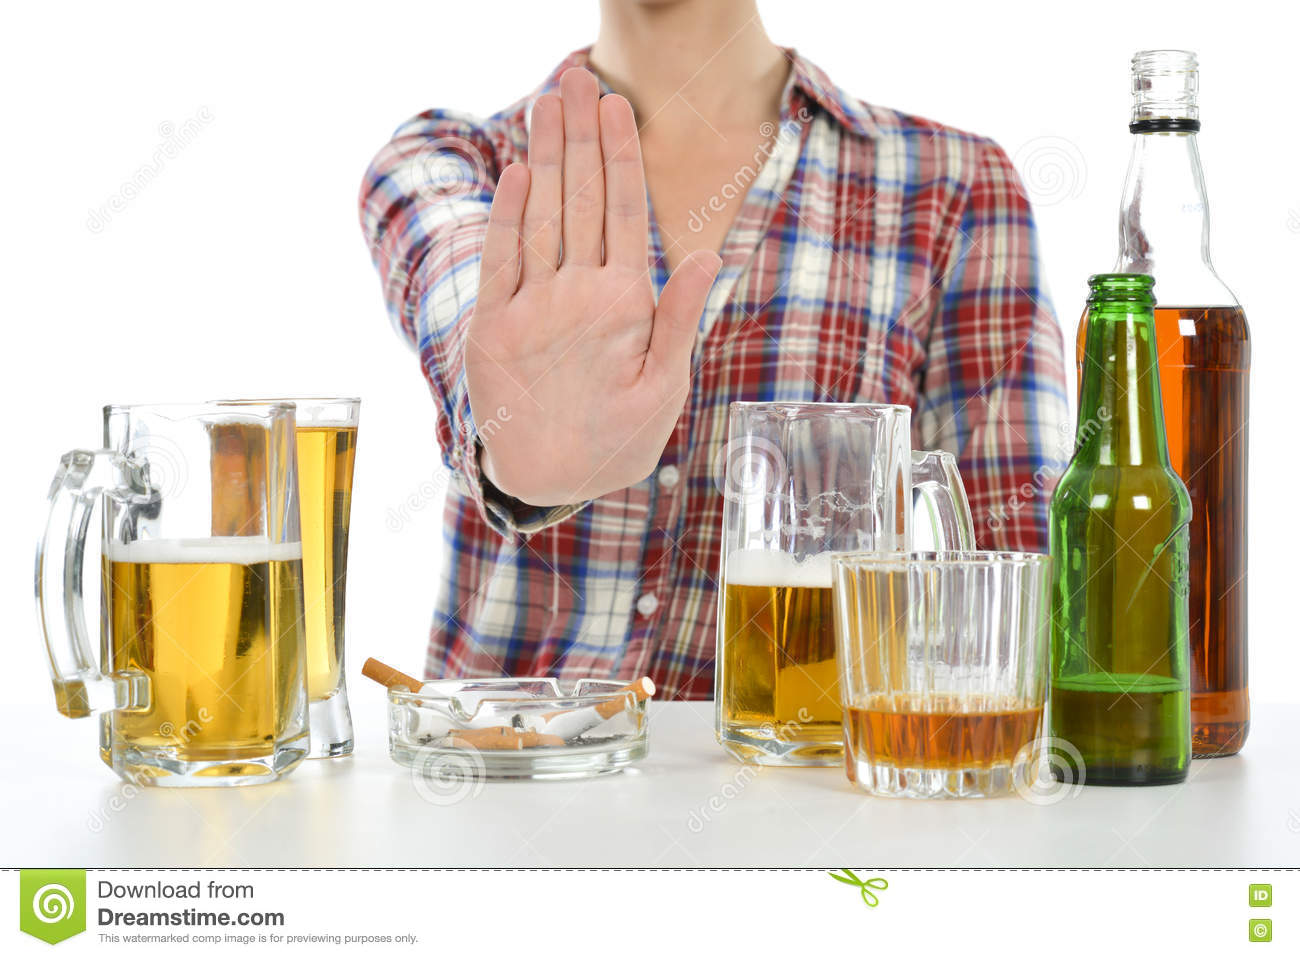 Woman wants to quit drinking and smoking